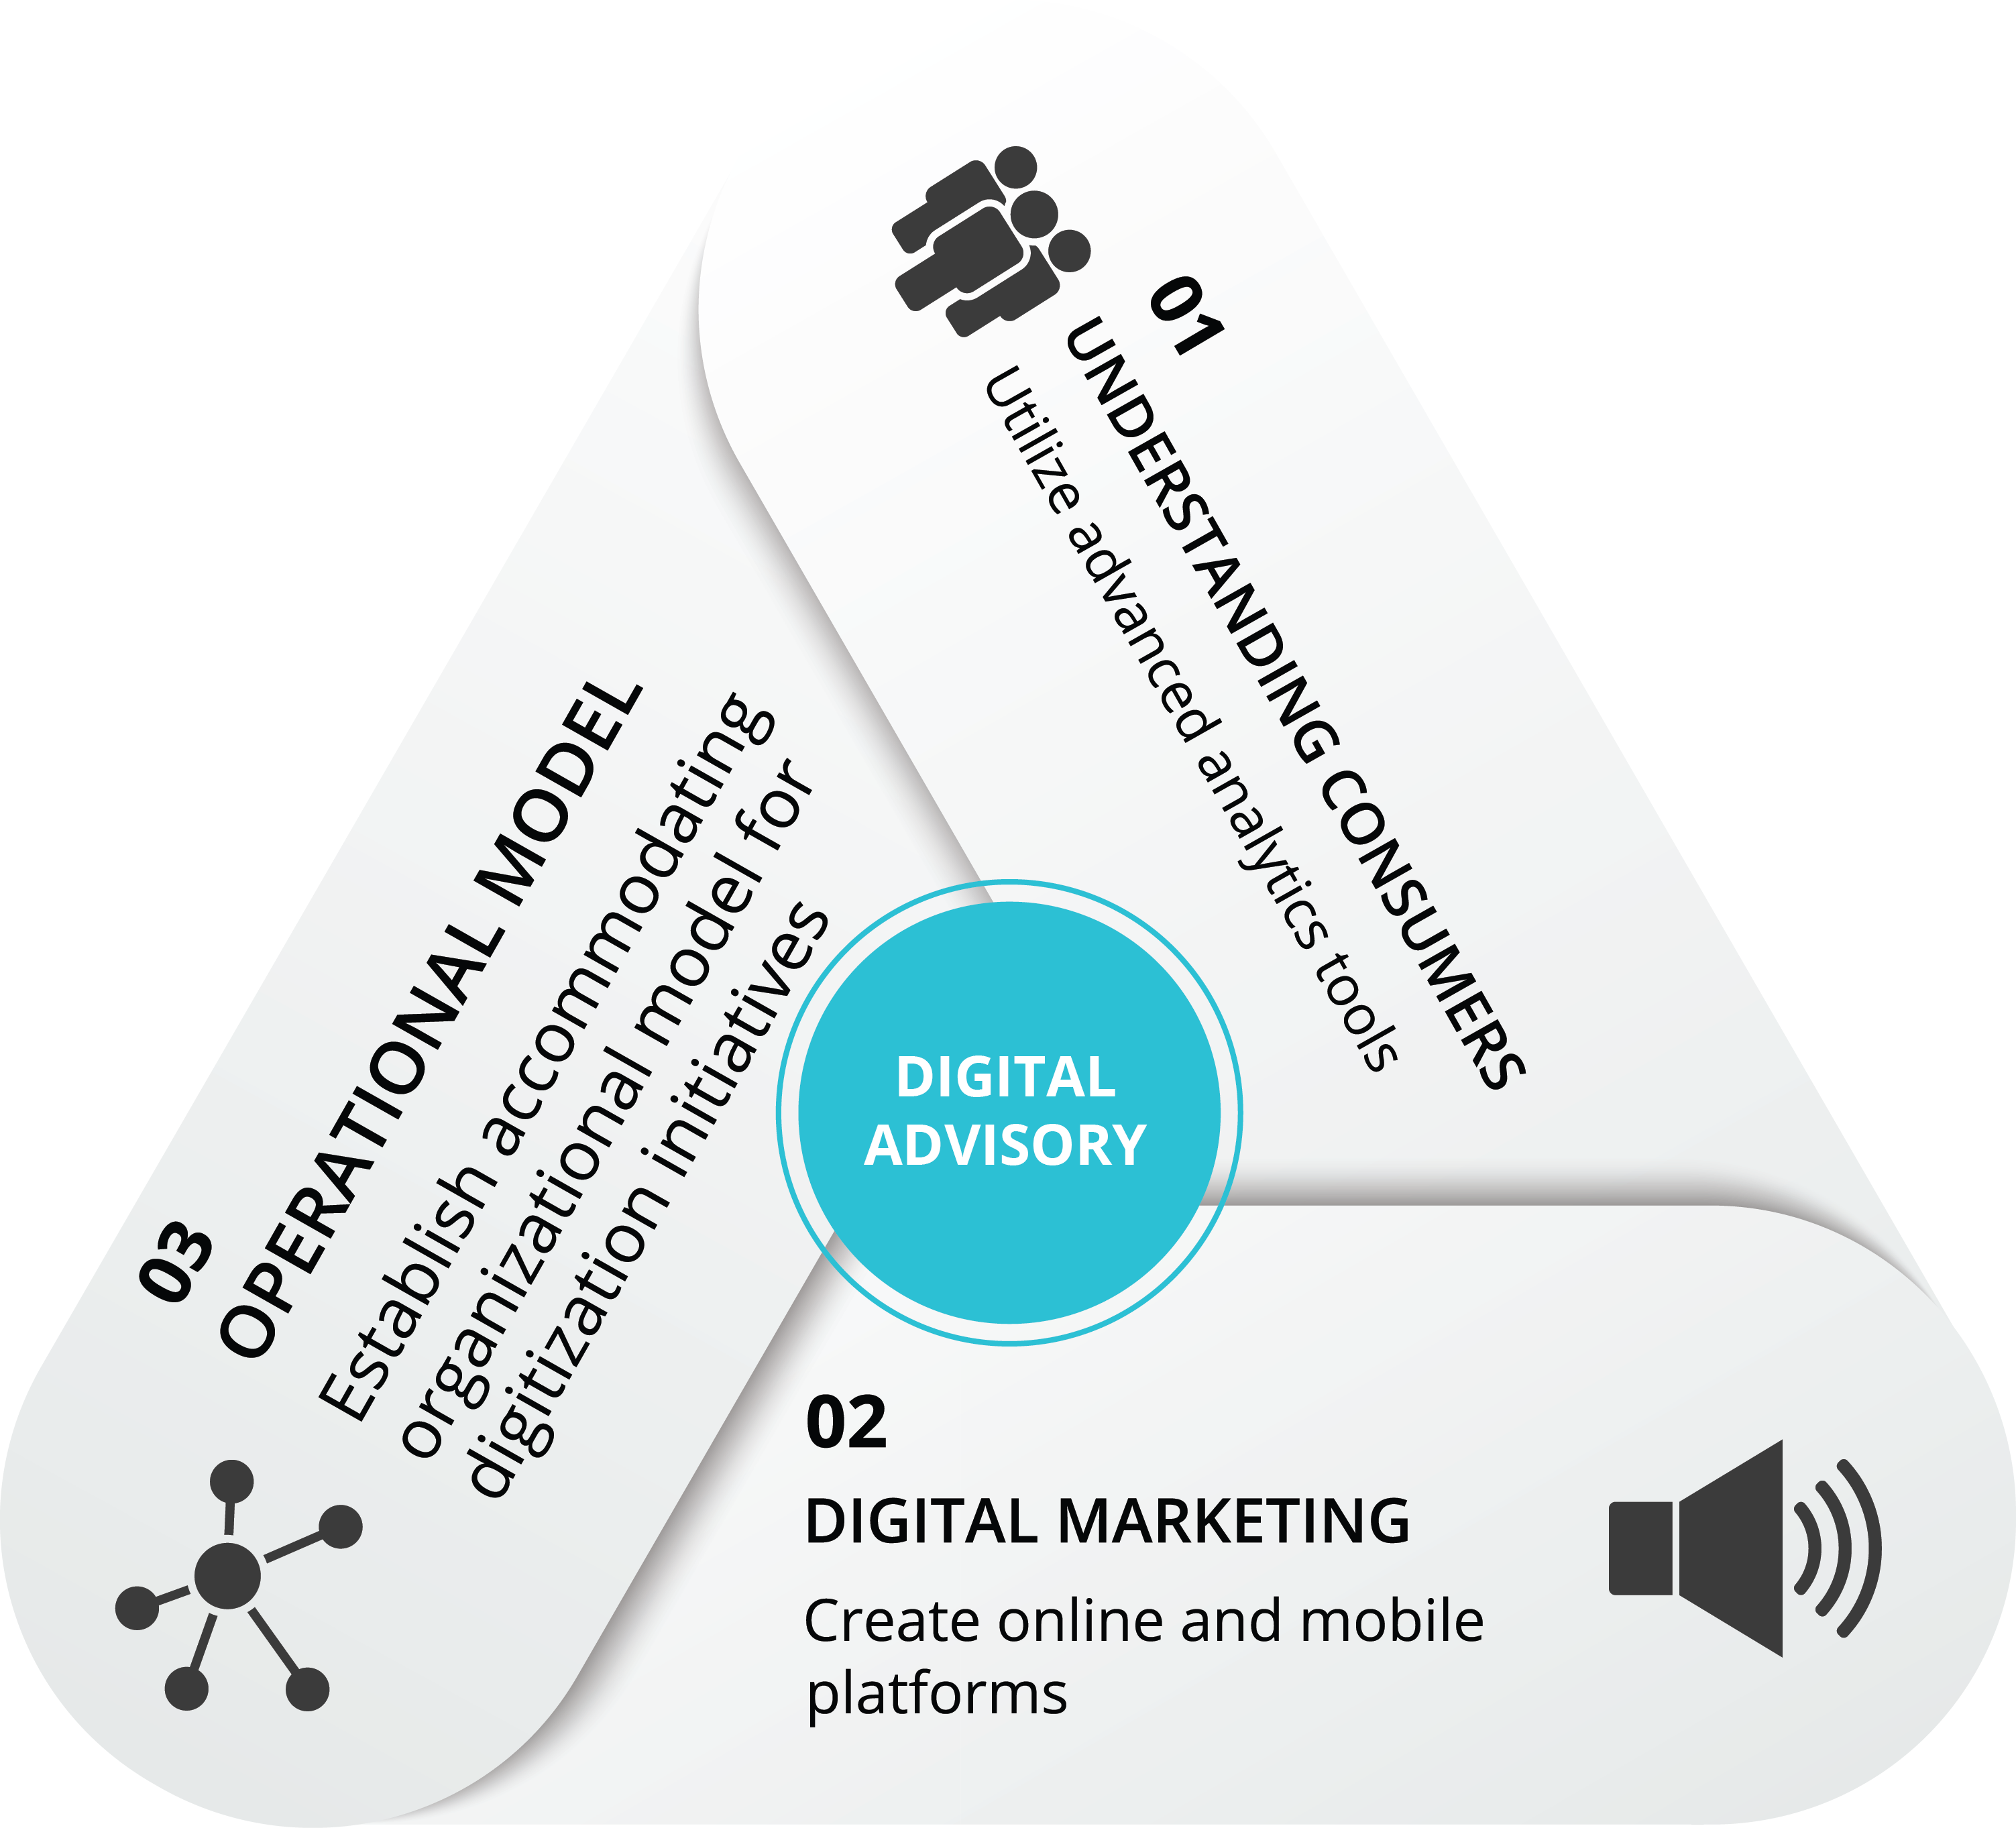 Digital Advisory Segments